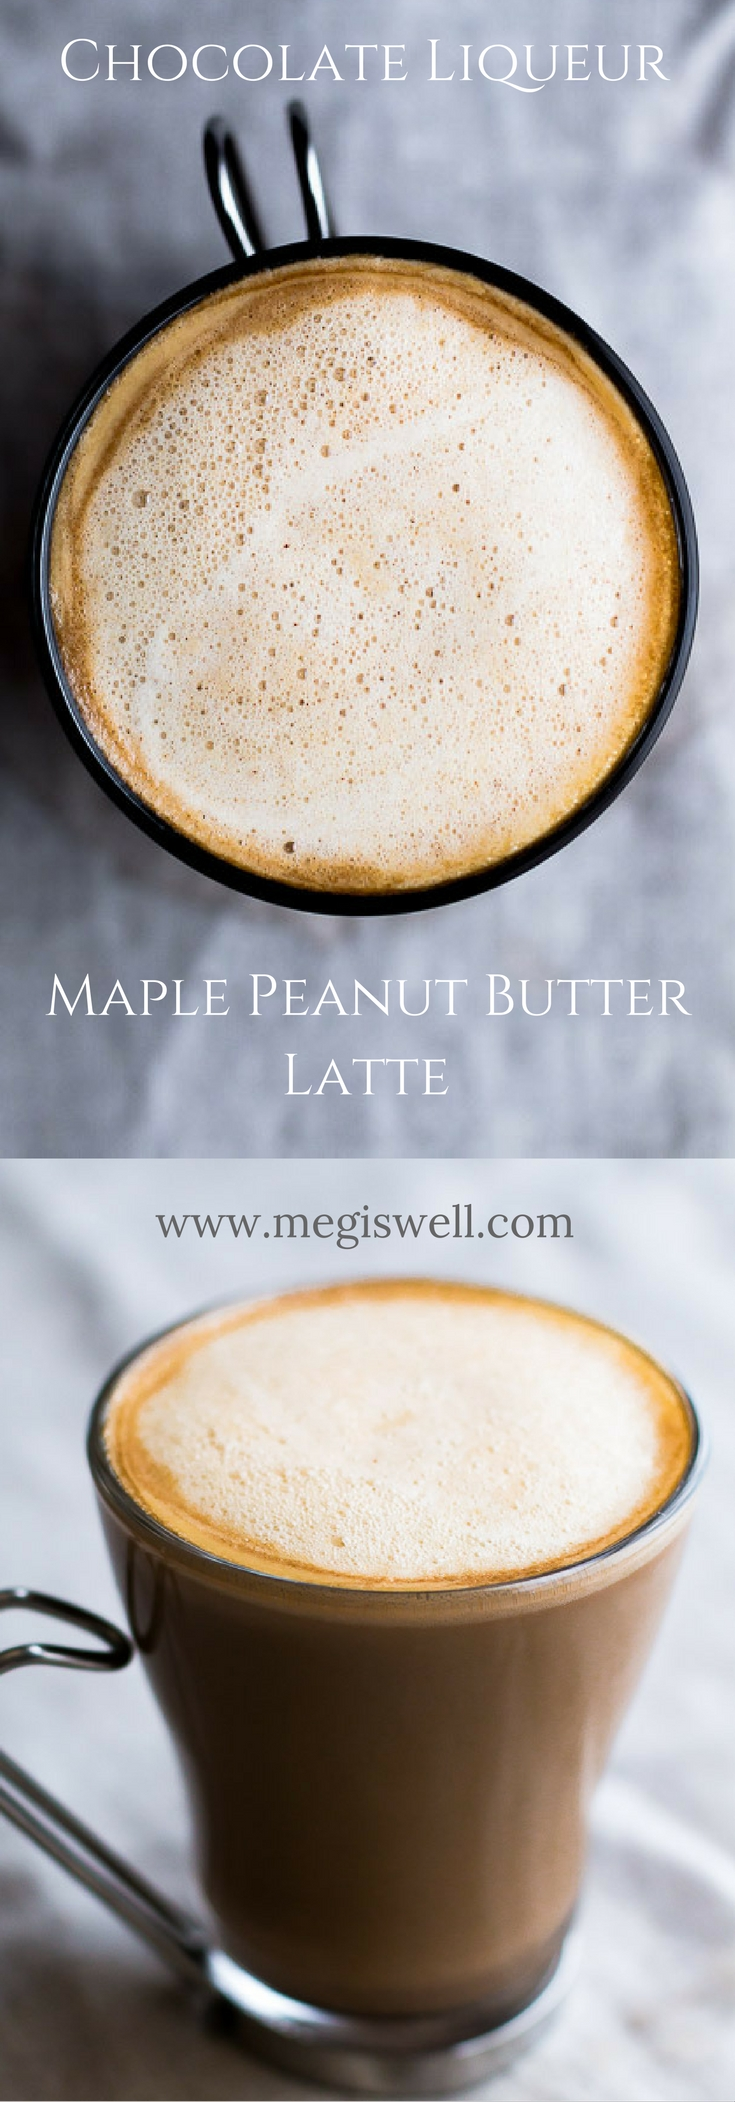 This Chocolate Liqueur Maple Peanut Butter Latte is a great after dinner digestif drink. The sweet maple and peanut butter syrup and chocolate liqueur pair extremely well with espresso or strongly brewed coffee, and creates the sweet end that every meal needs. This post is sponsored by Drizly. | www.megiswell.com